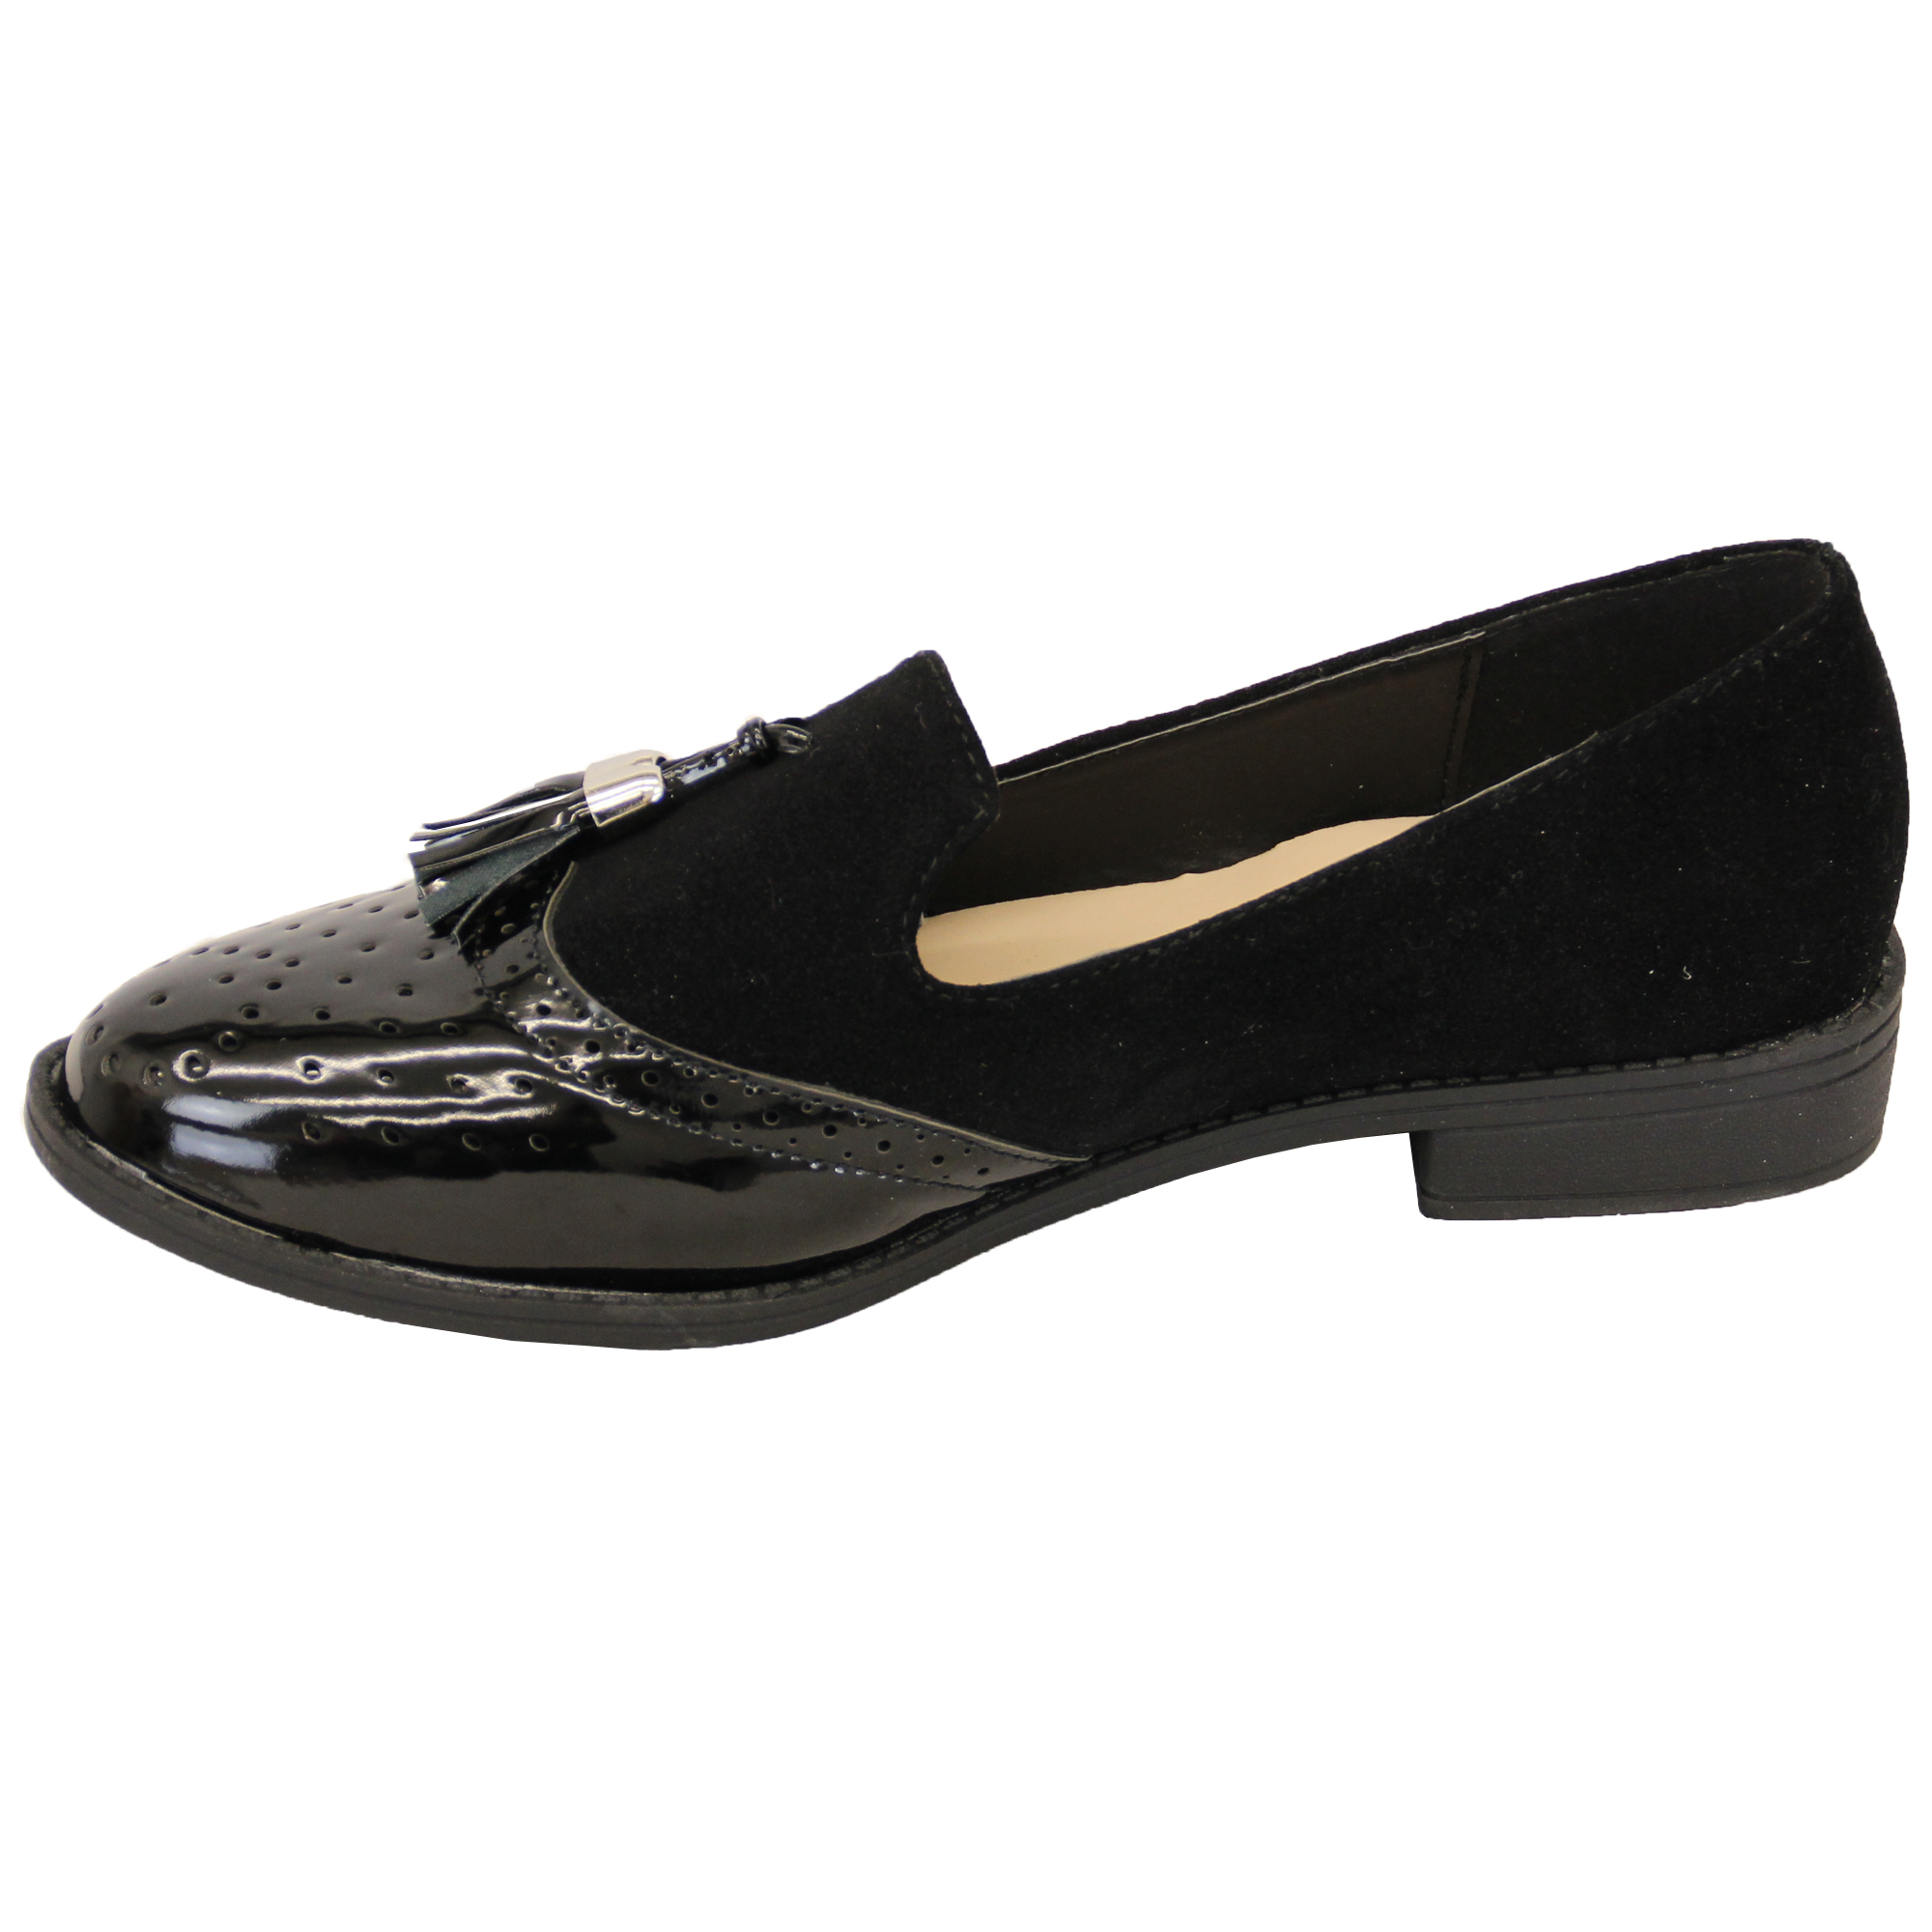 Find great deals on eBay for suede loafers womens. Shop with confidence.